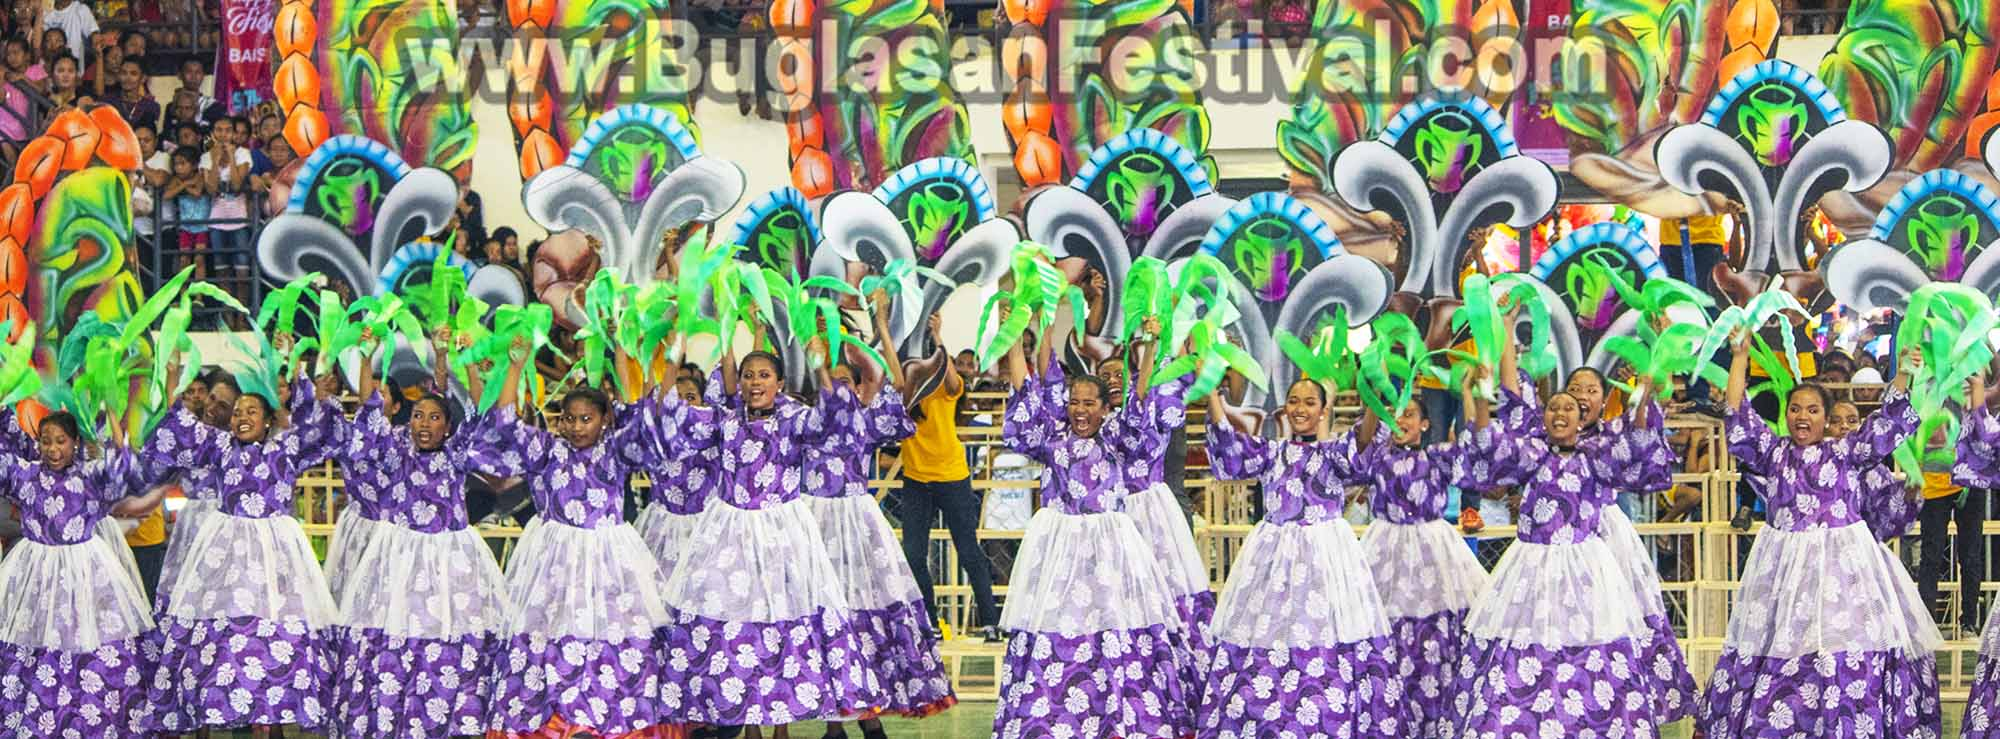 Tapasayaw Festival 2019 - Bais City - Showdown